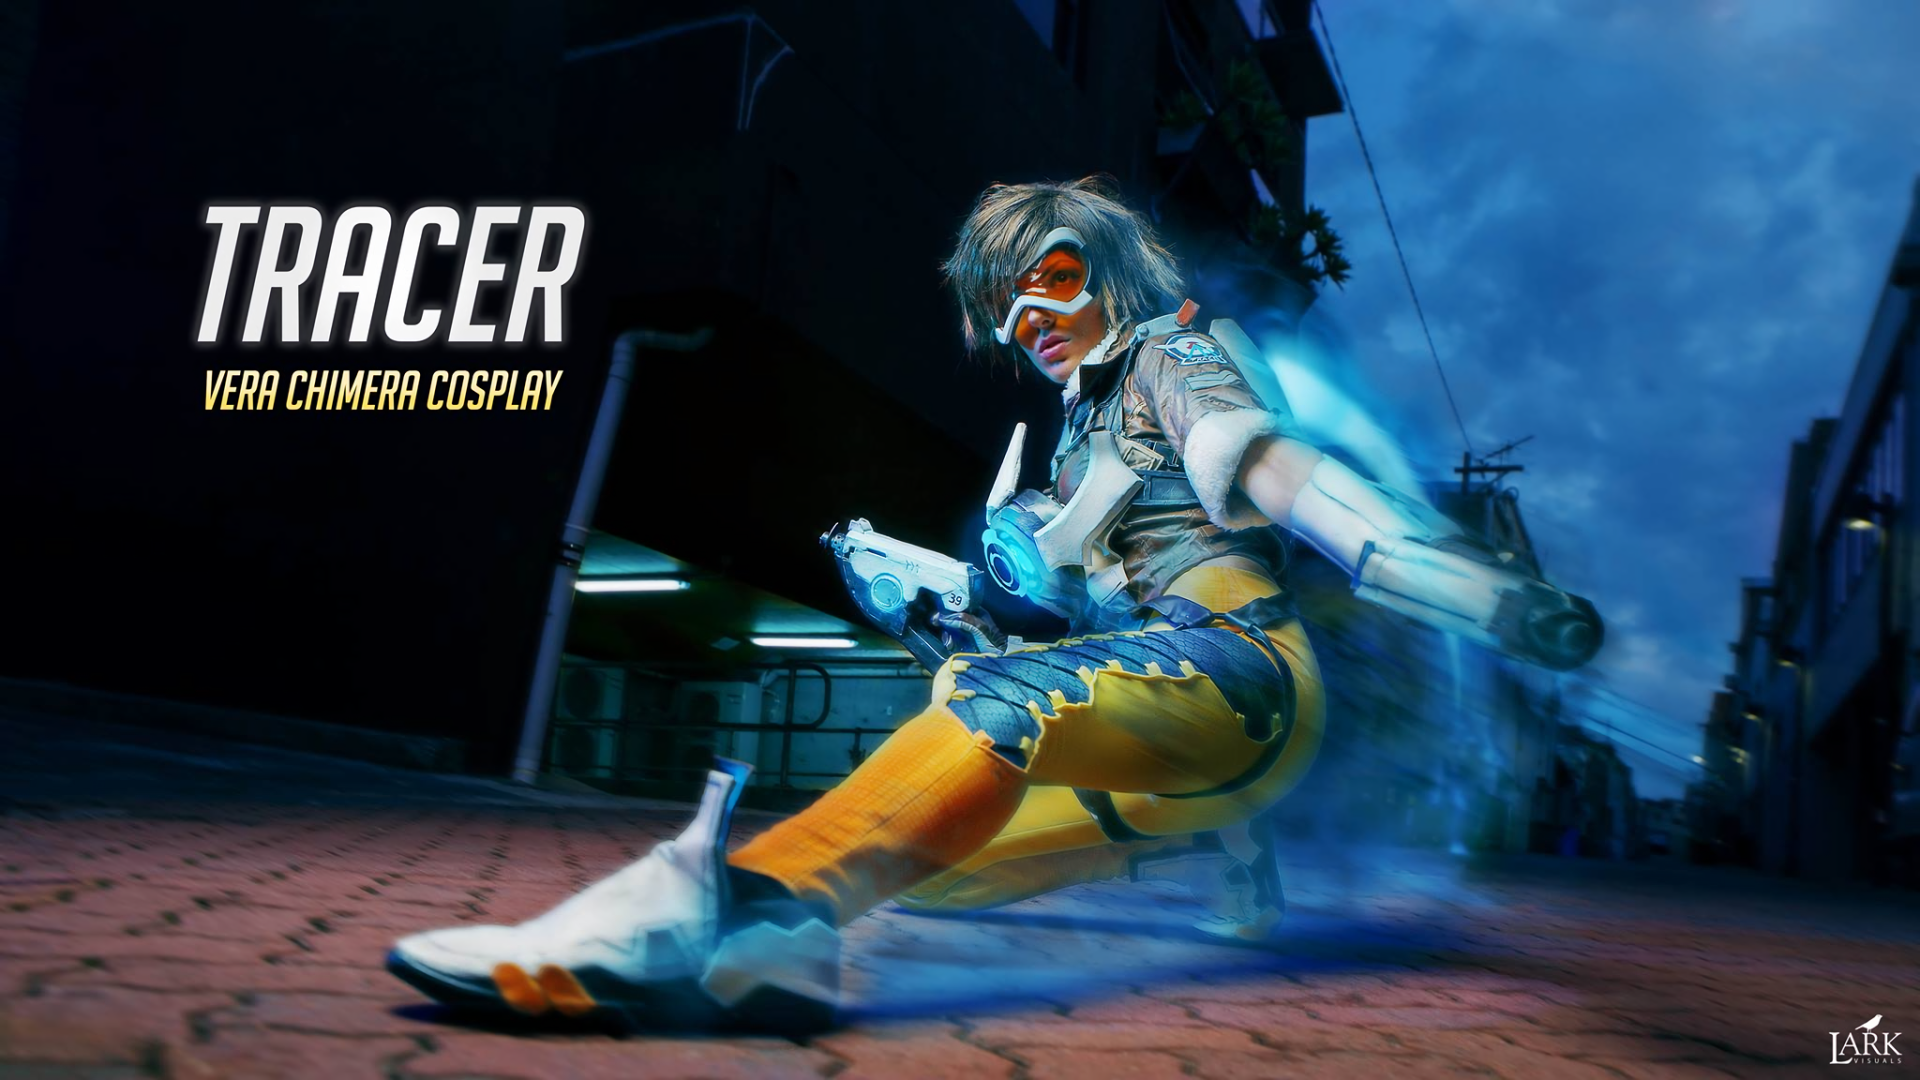 overwatch agent tracer wallpapers - photo #18